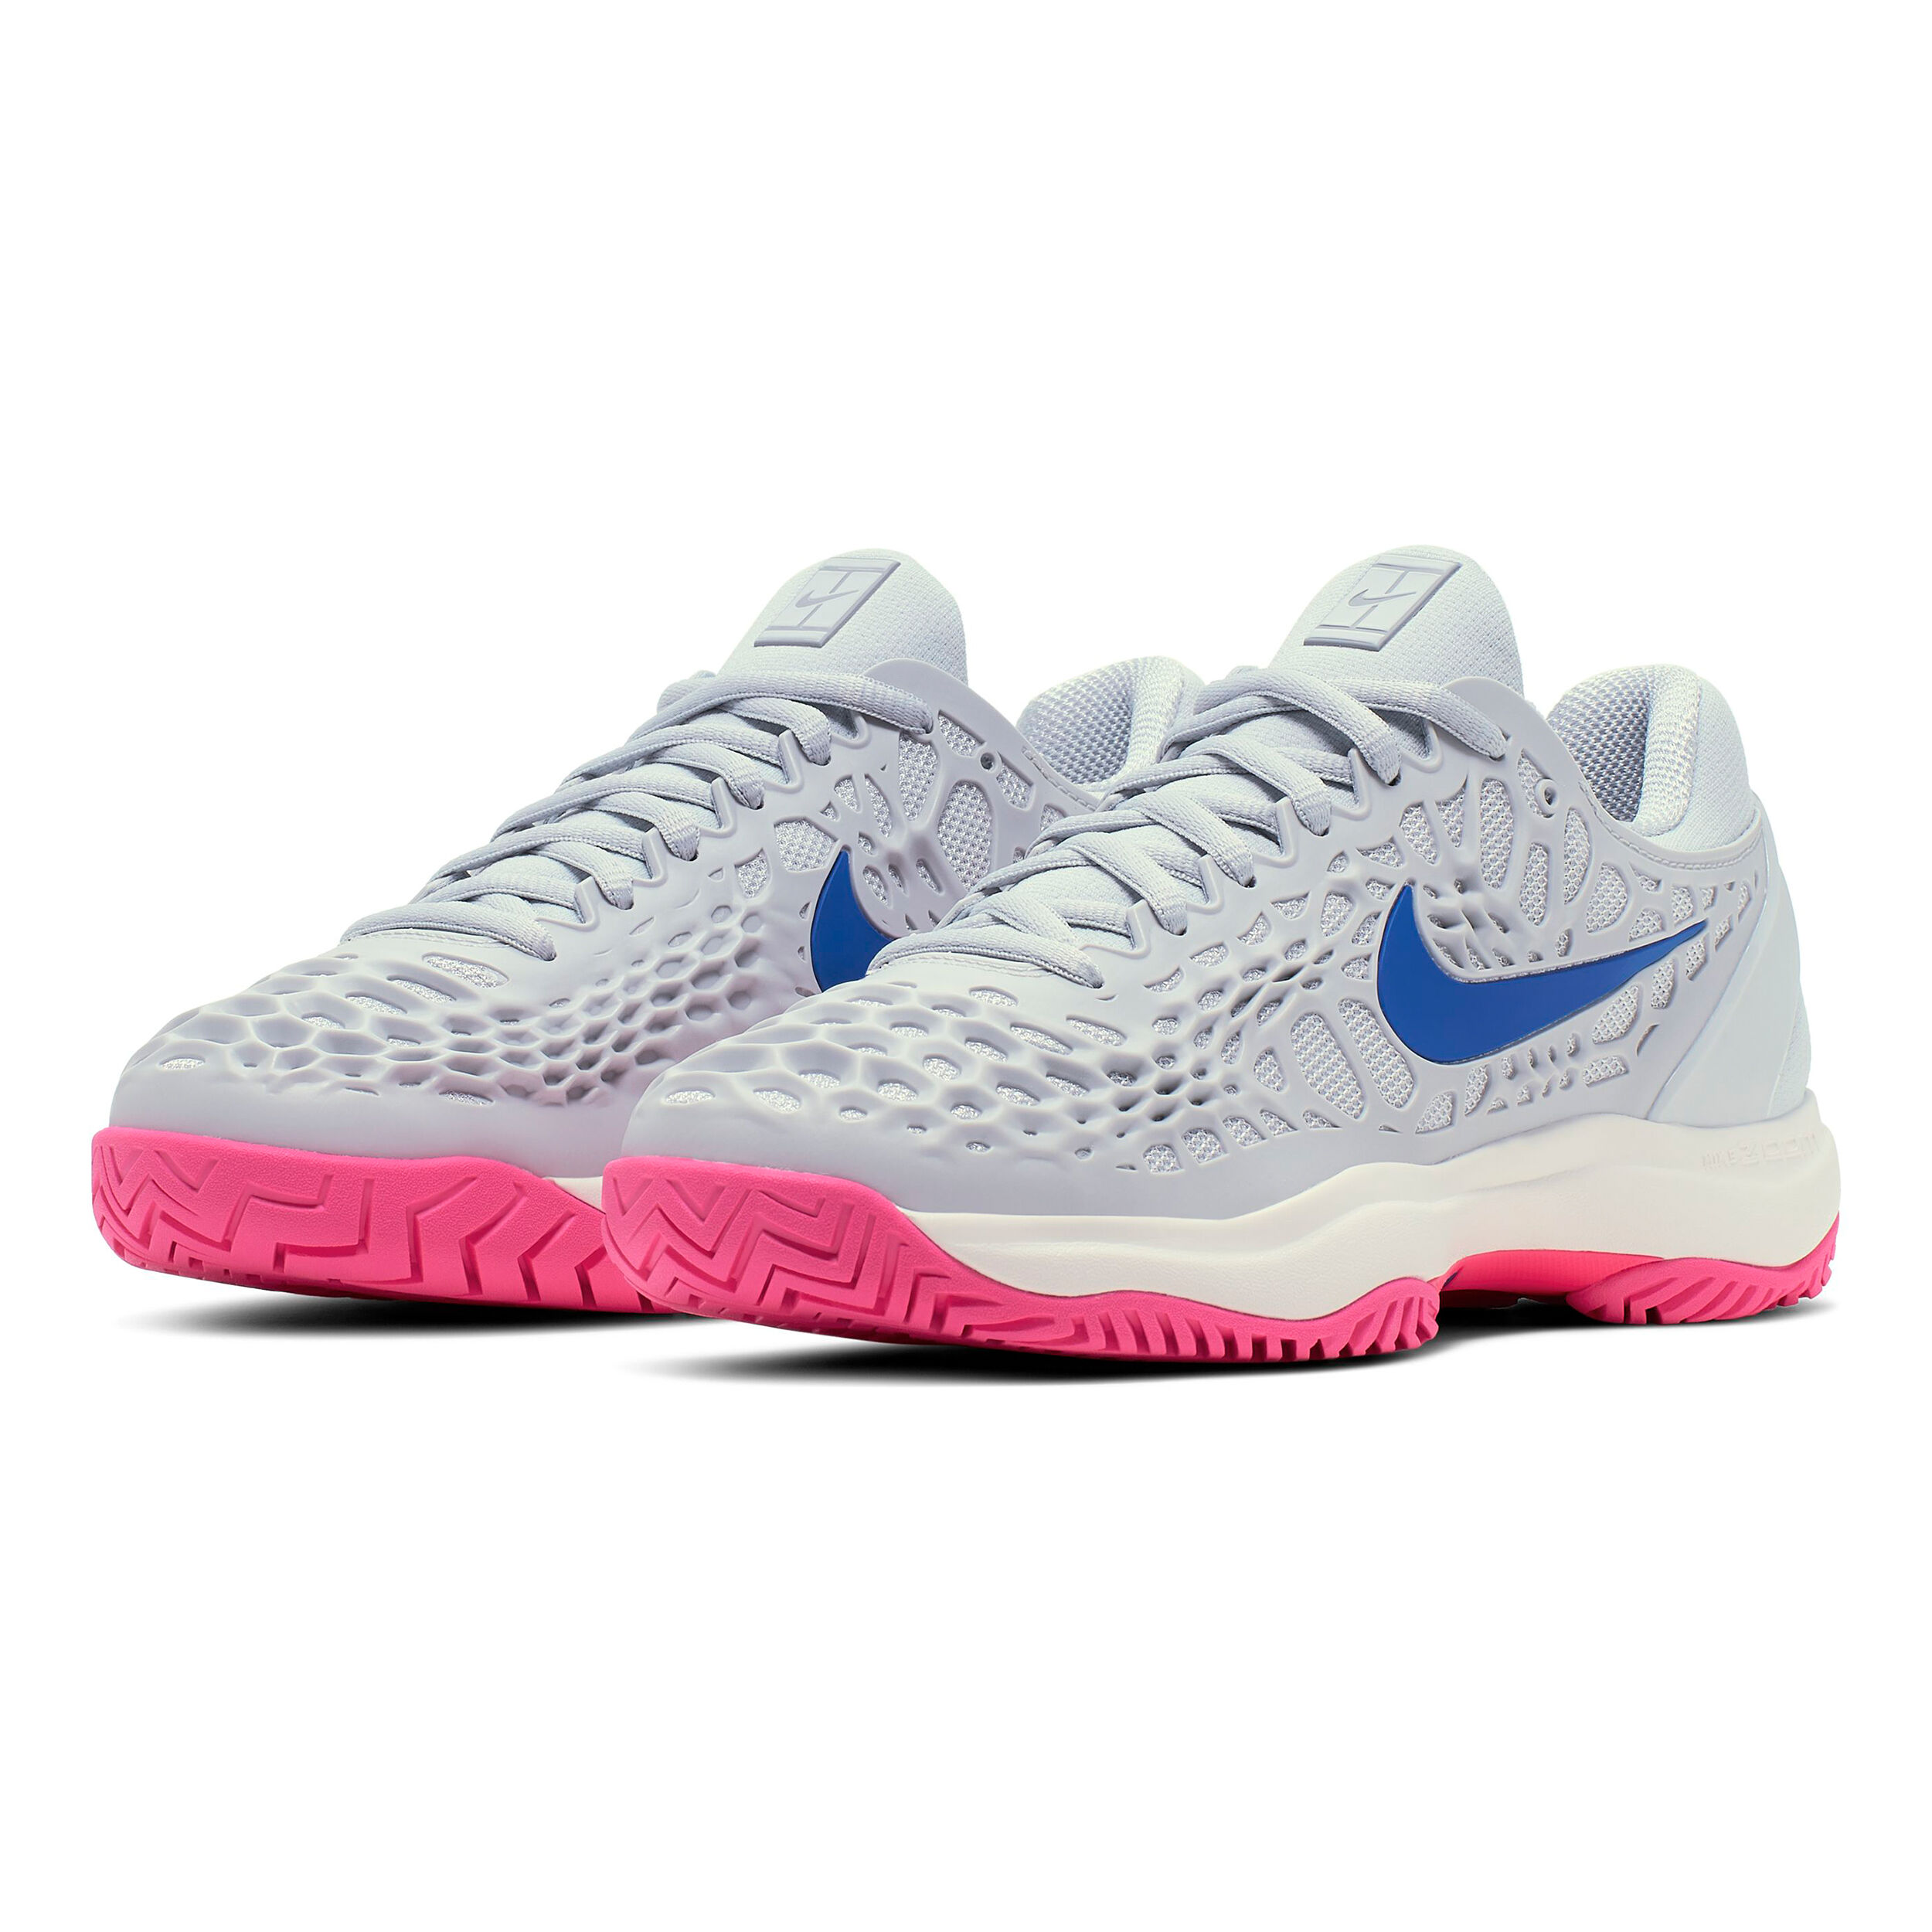 Nike Zoom Cage 3 Chaussures Toutes Surfaces Femmes Gris